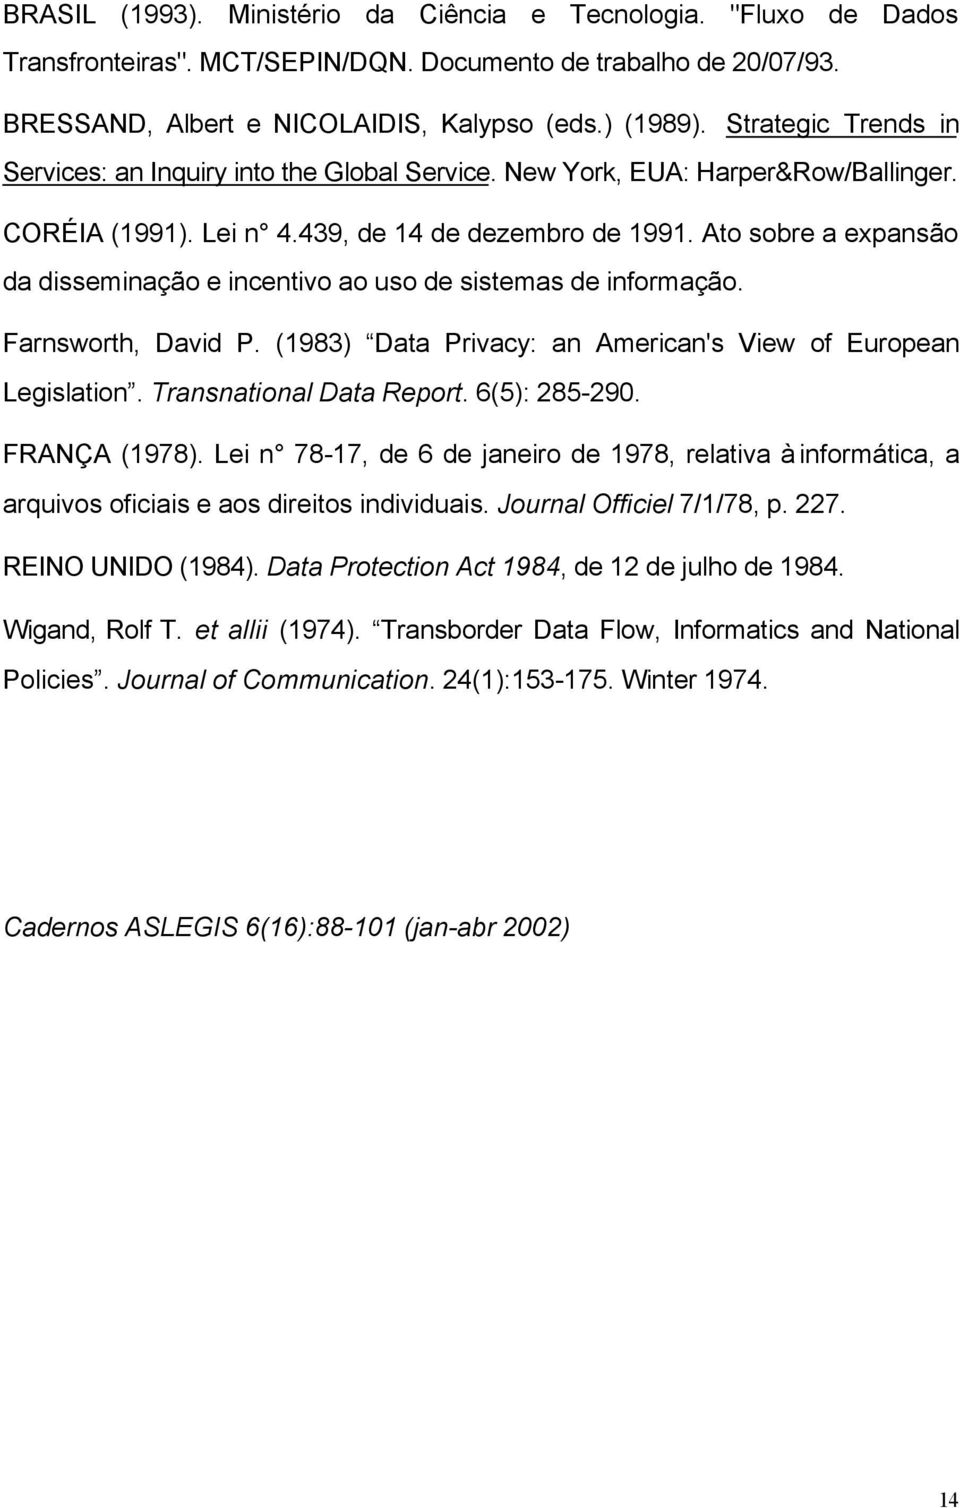 Ato sobre a expansão da disseminação e incentivo ao uso de sistemas de informação. Farnsworth, David P. (1983) Data Privacy: an American's View of European Legislation. Transnational Data Report.